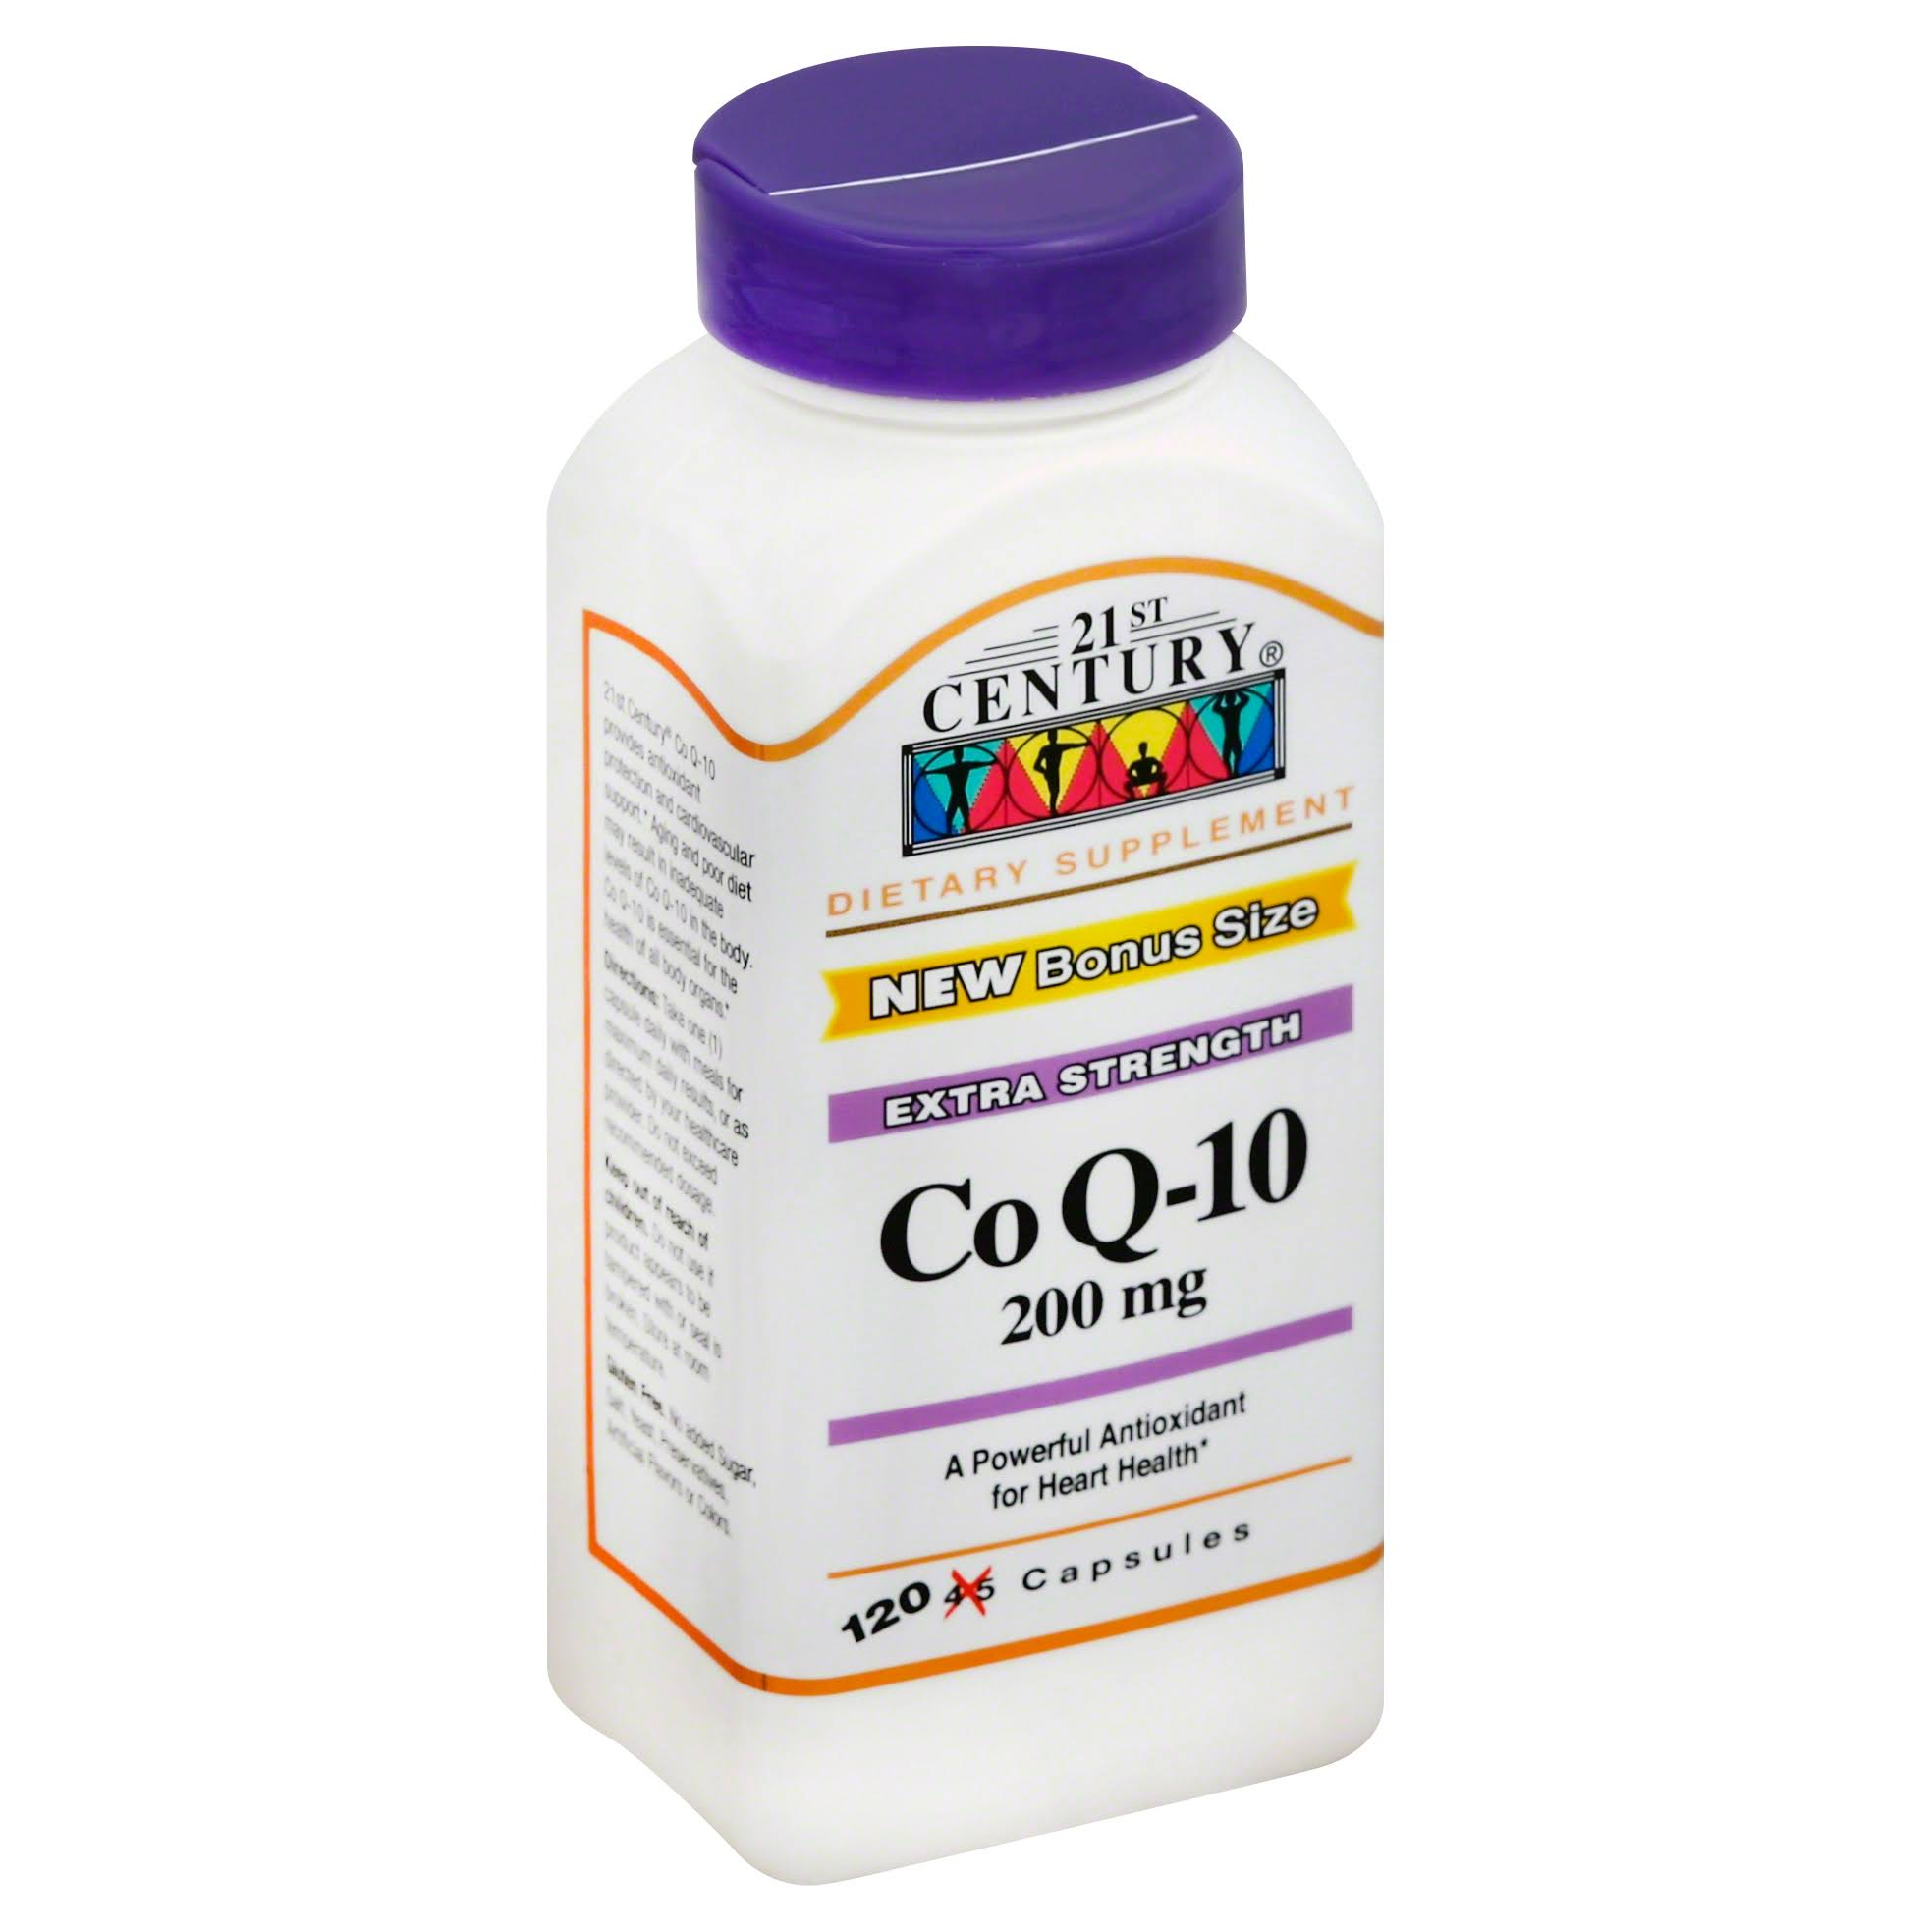 21st Century CoQ10 Dietary Supplement - 200mg, 120ct